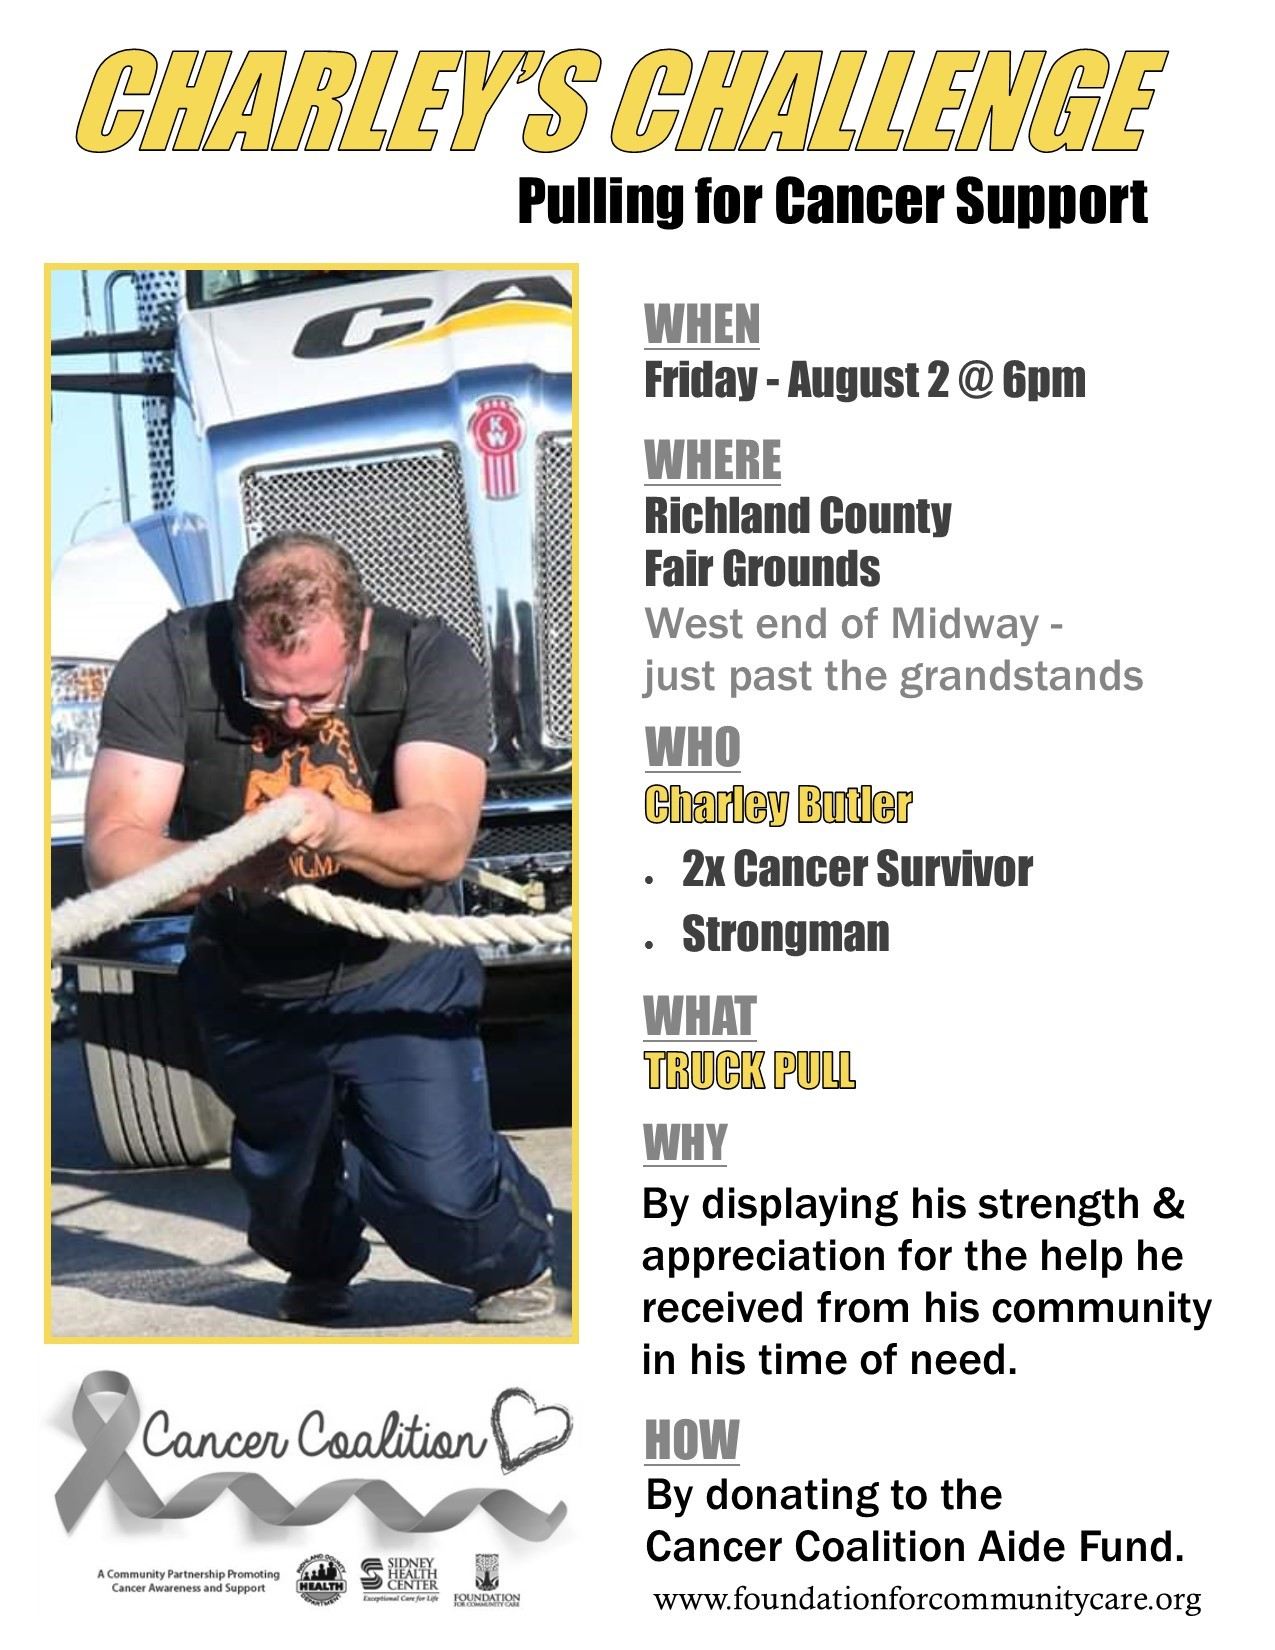 Charley's Challenge-Pulling for Cancer Support